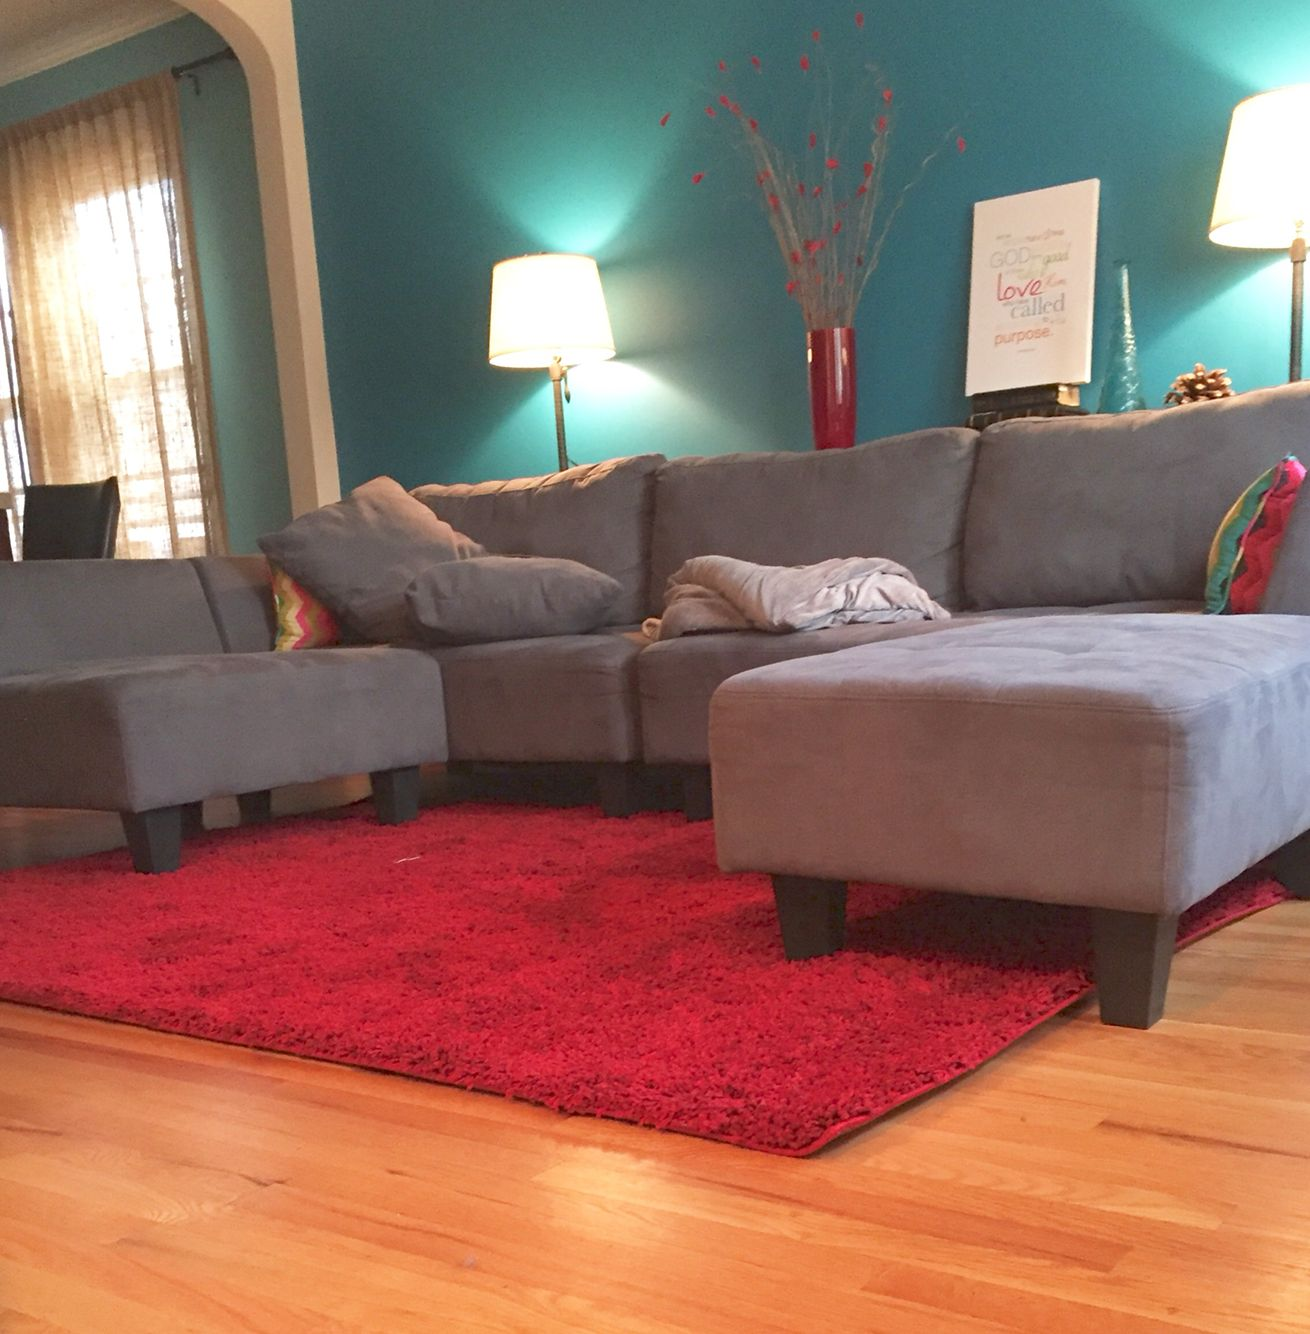 Best Living Room Idea Teal Blue Wall Grey Couch Ruby Red Rug 400 x 300